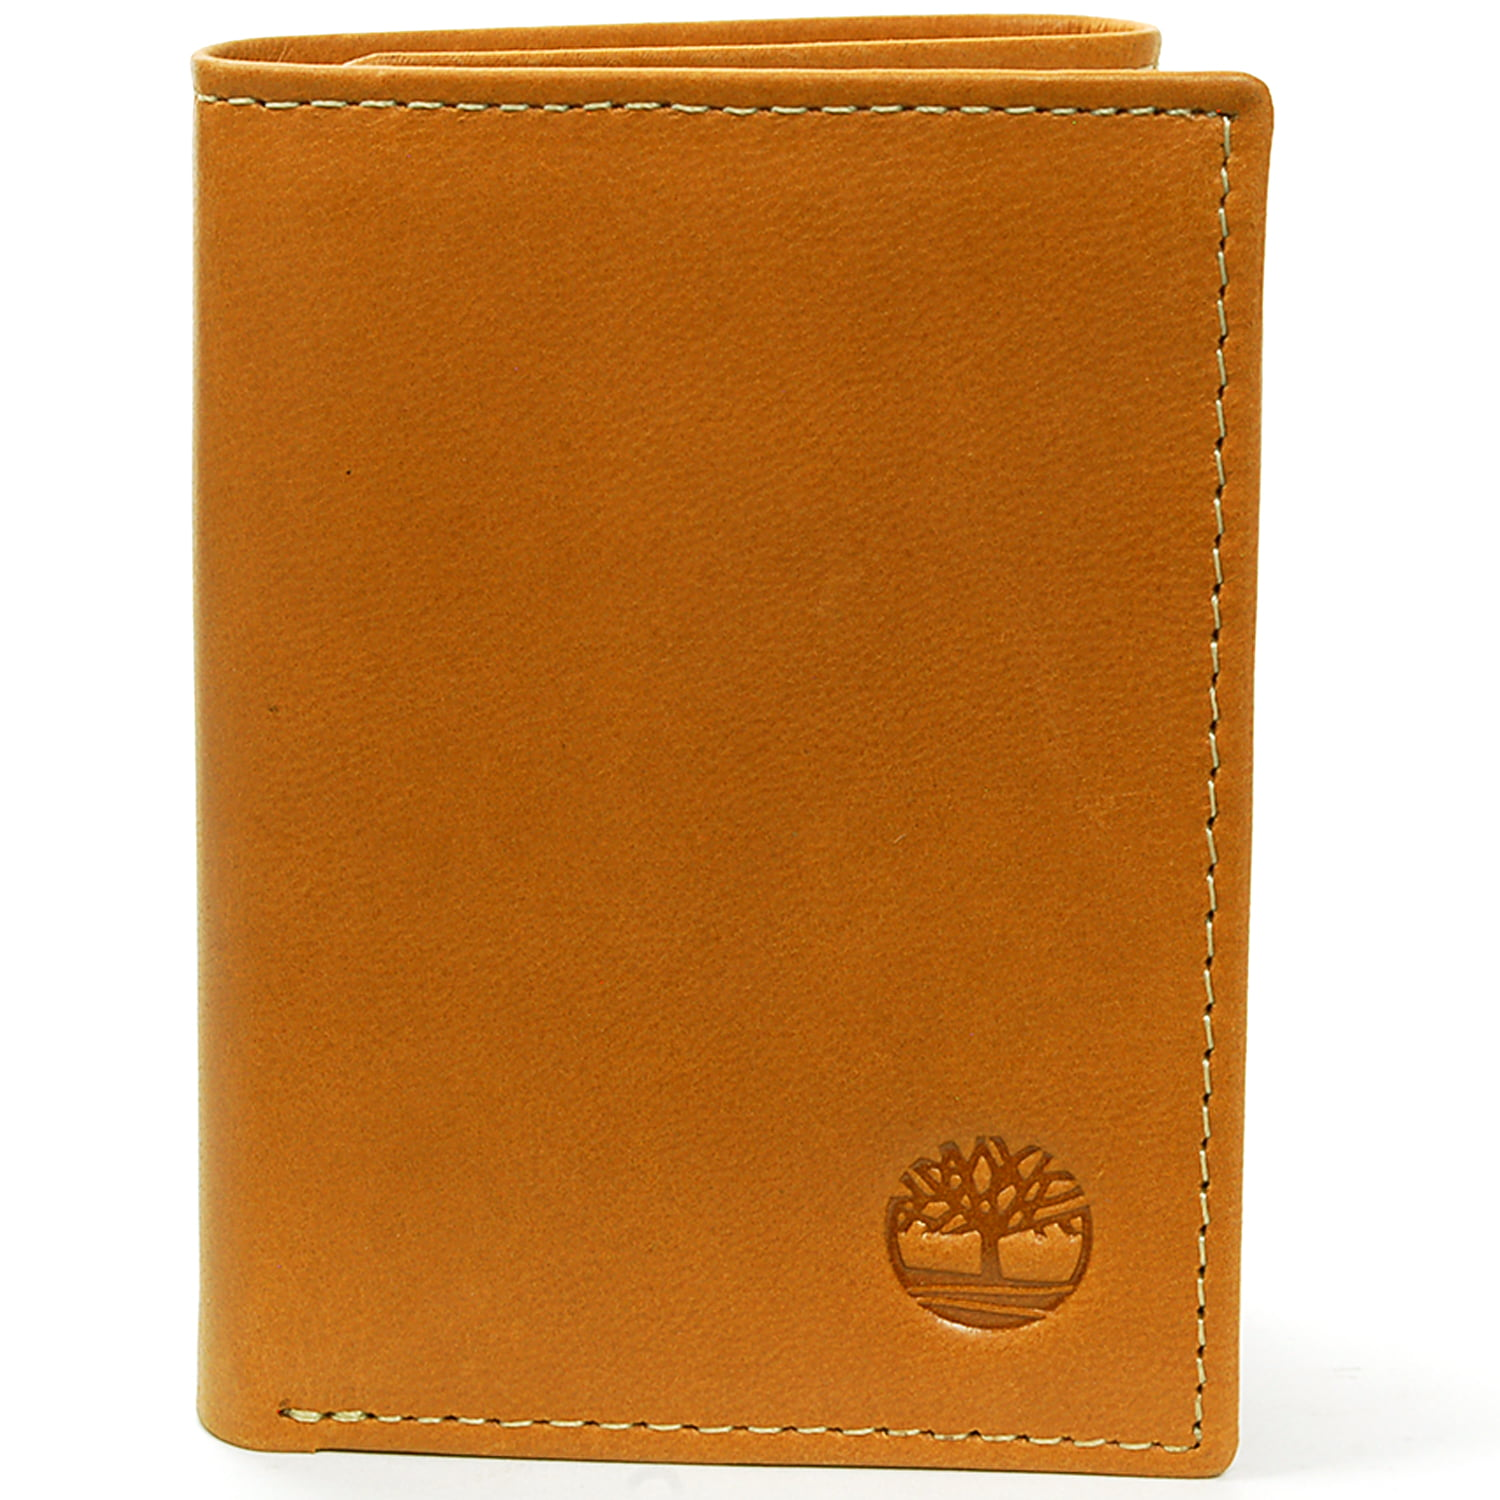 cb97ba8289de8 Timberland Men S Brown Genuine Leather Colorado Trifold Wallet ...